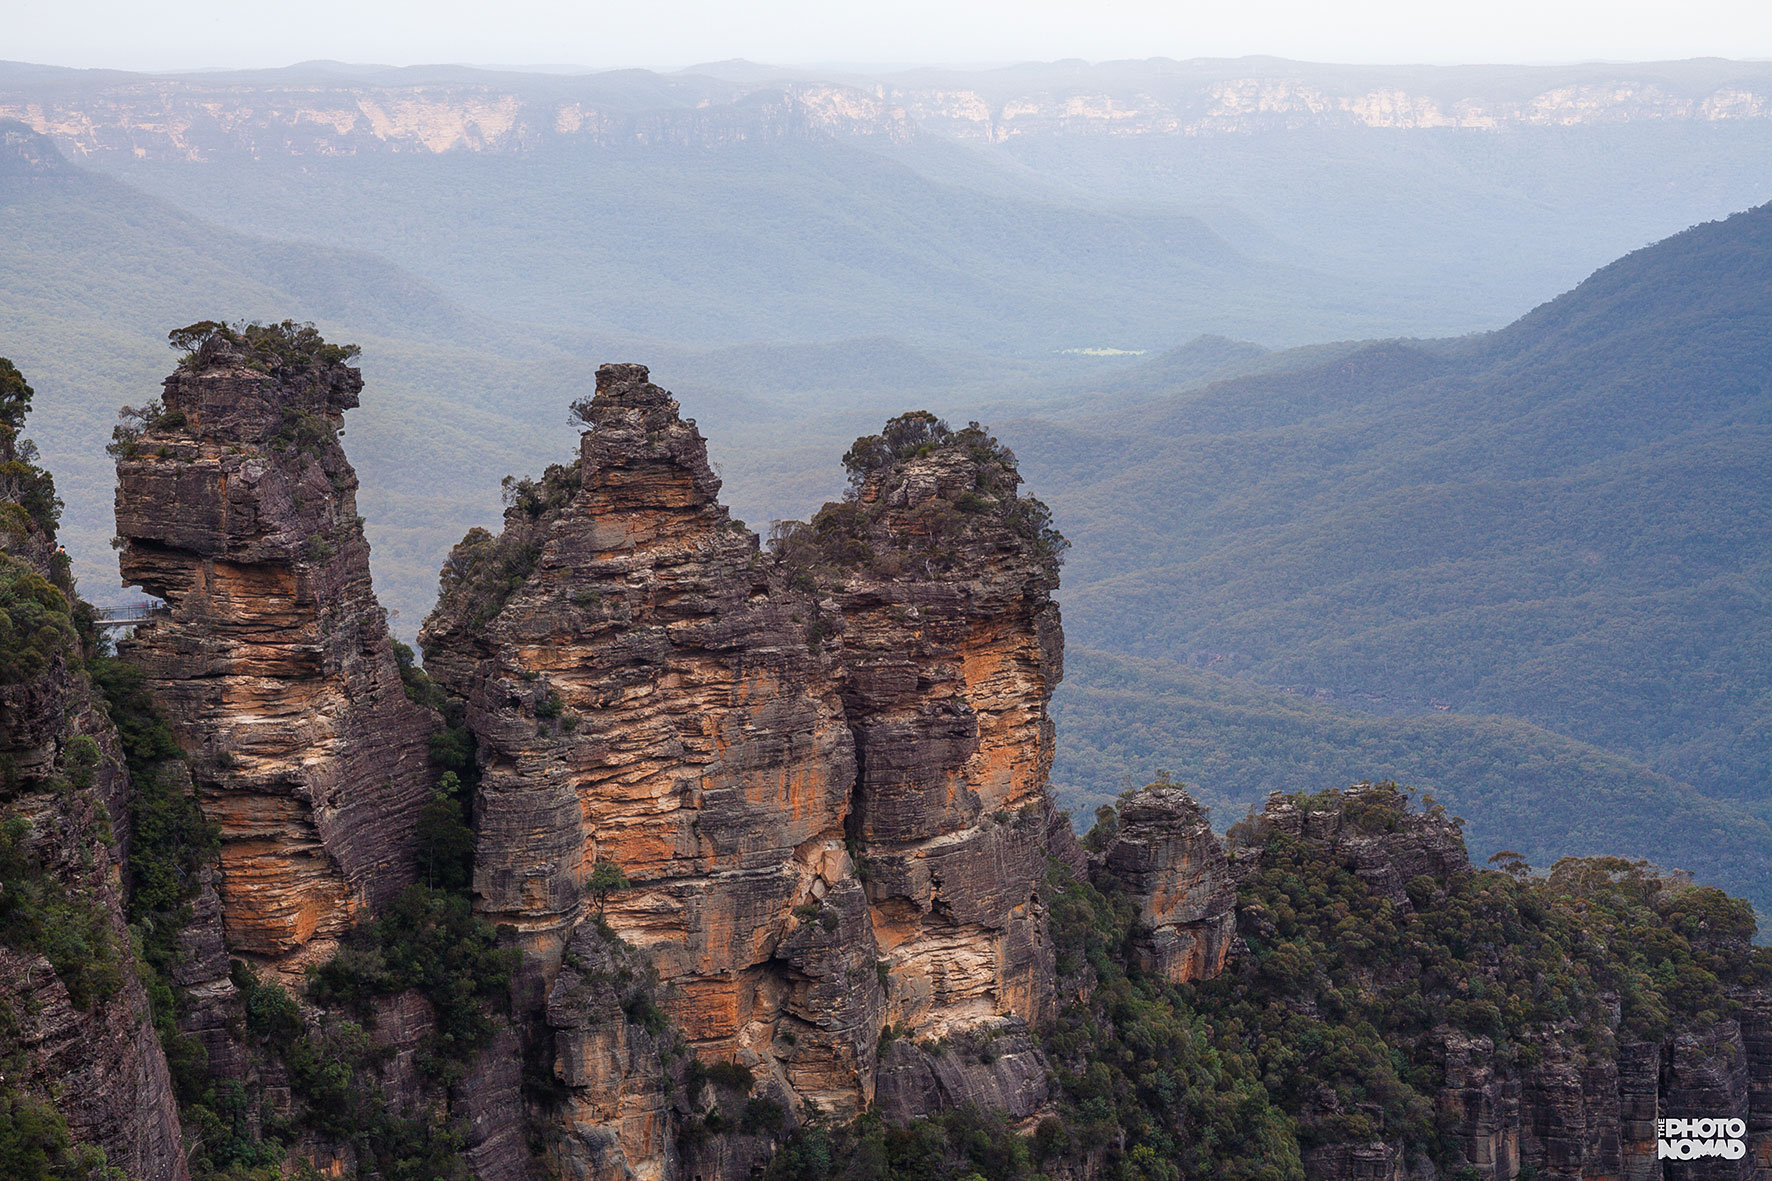 The Three Sisters, Echo Point NSW